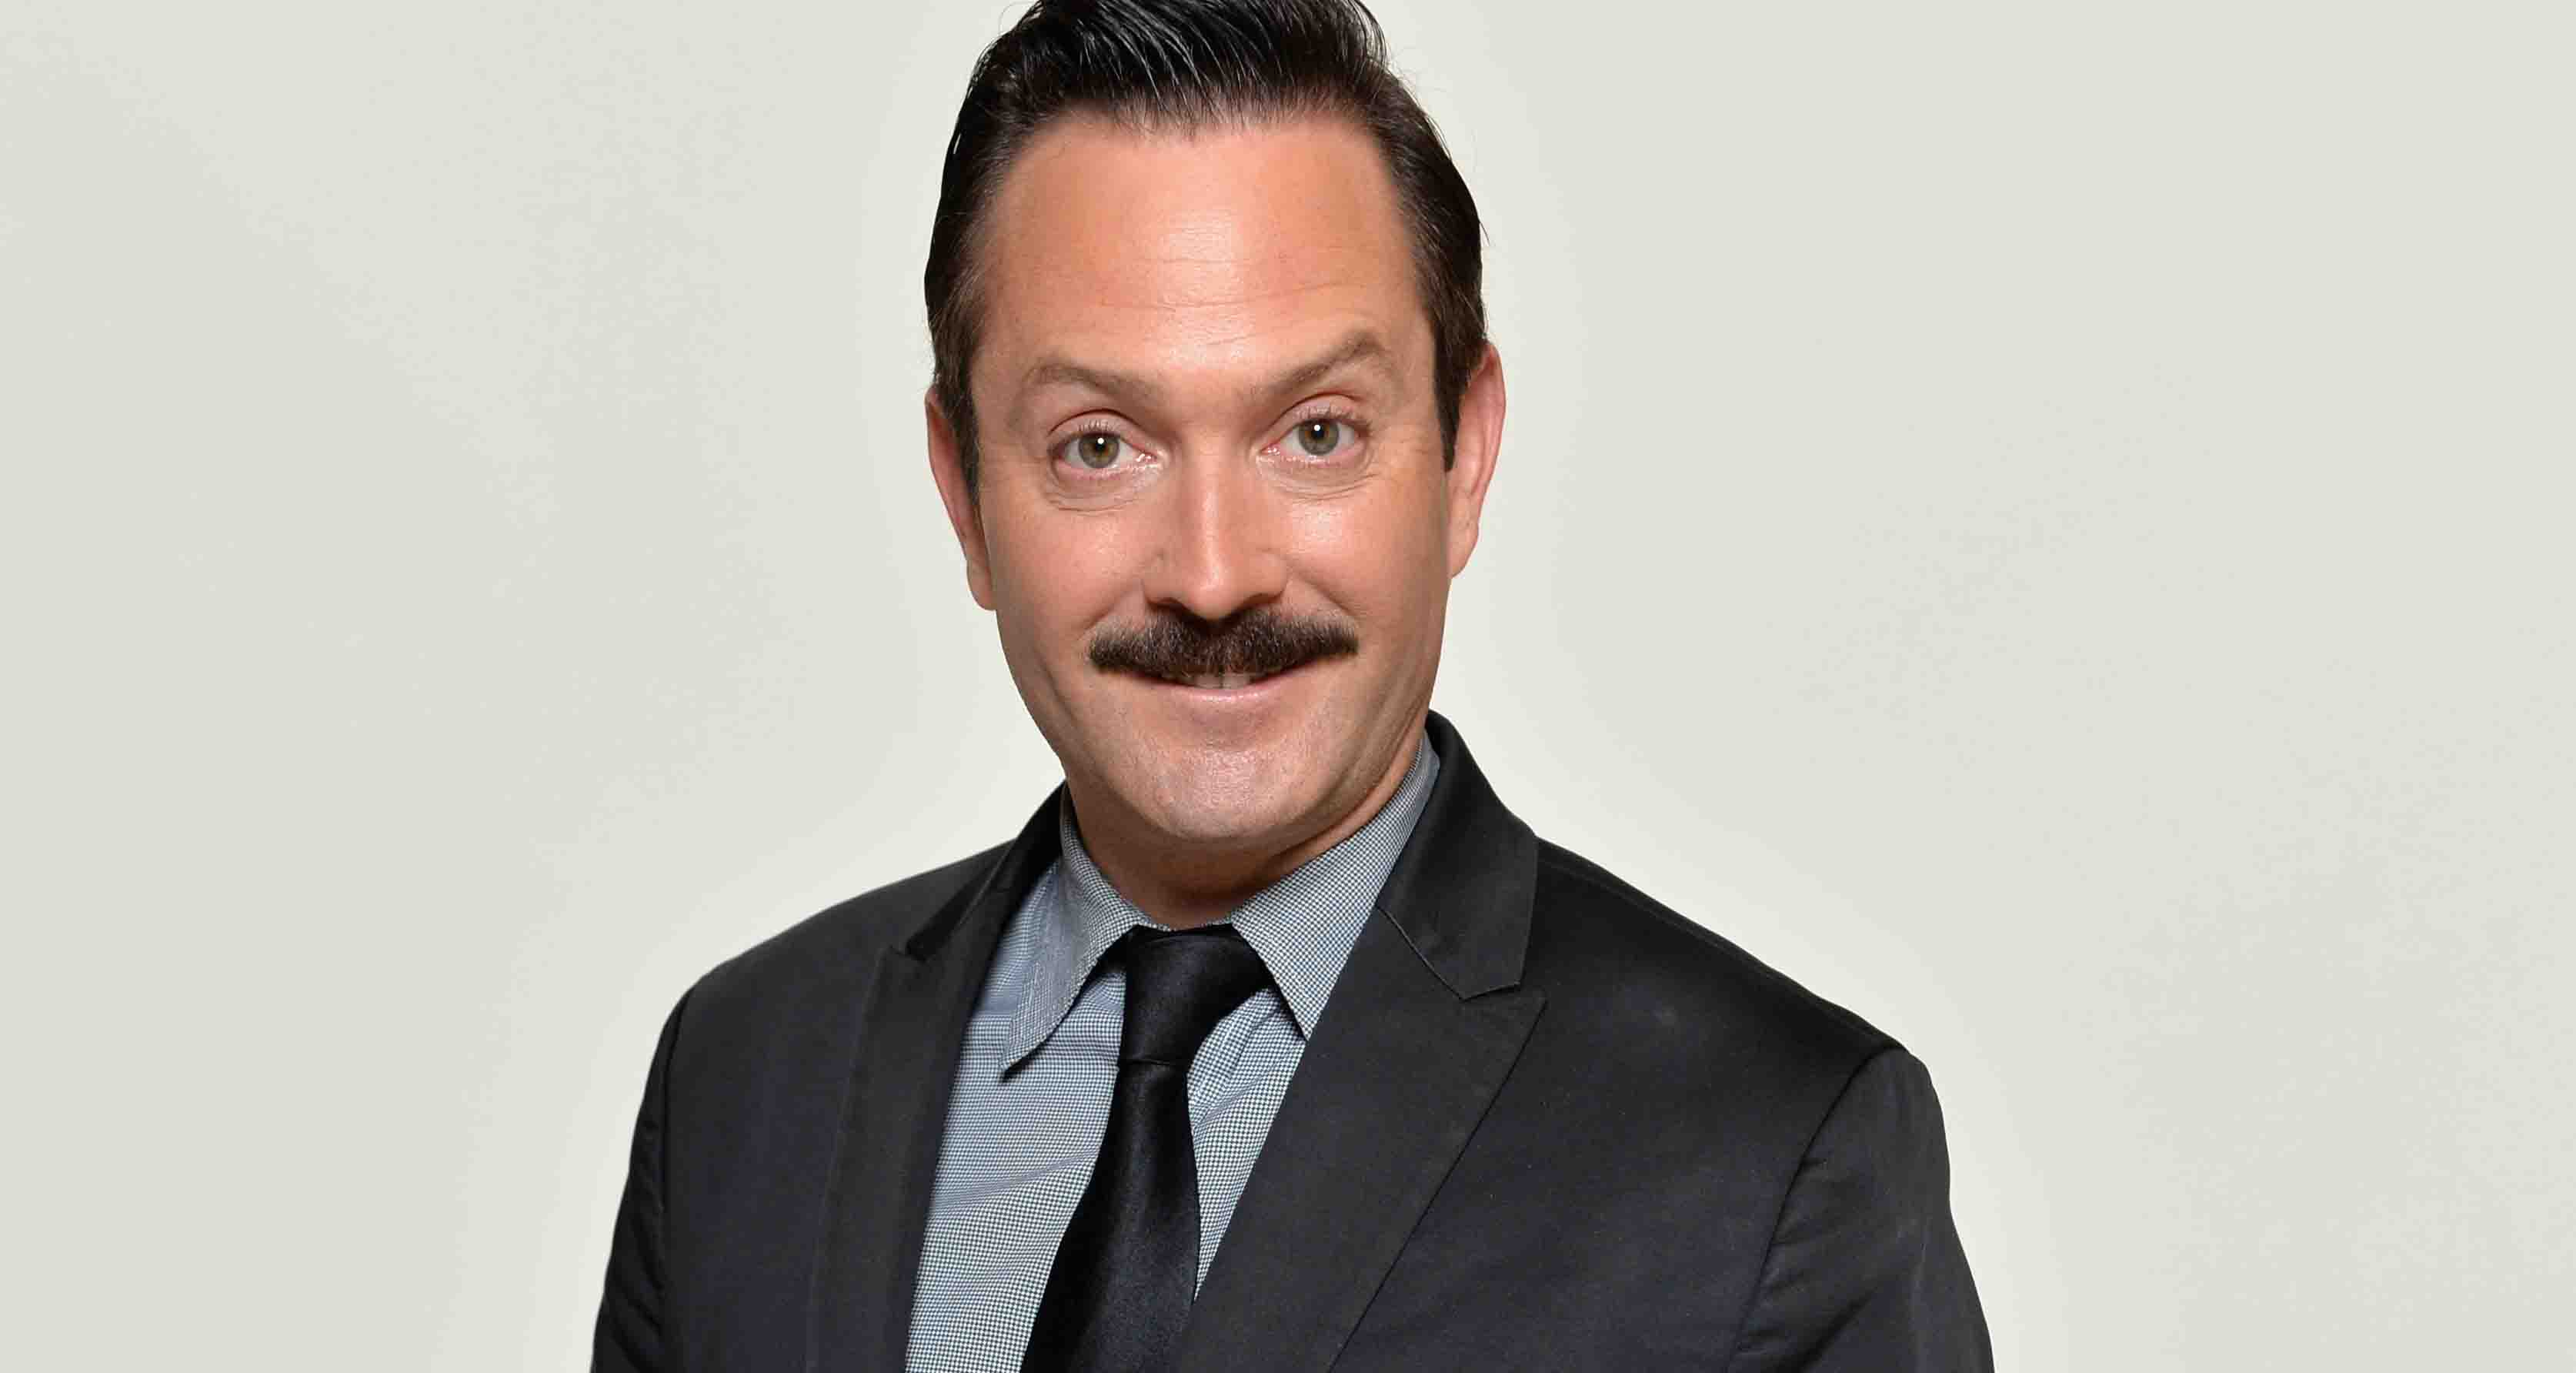 Thomas Lennon: biography and career of the actor